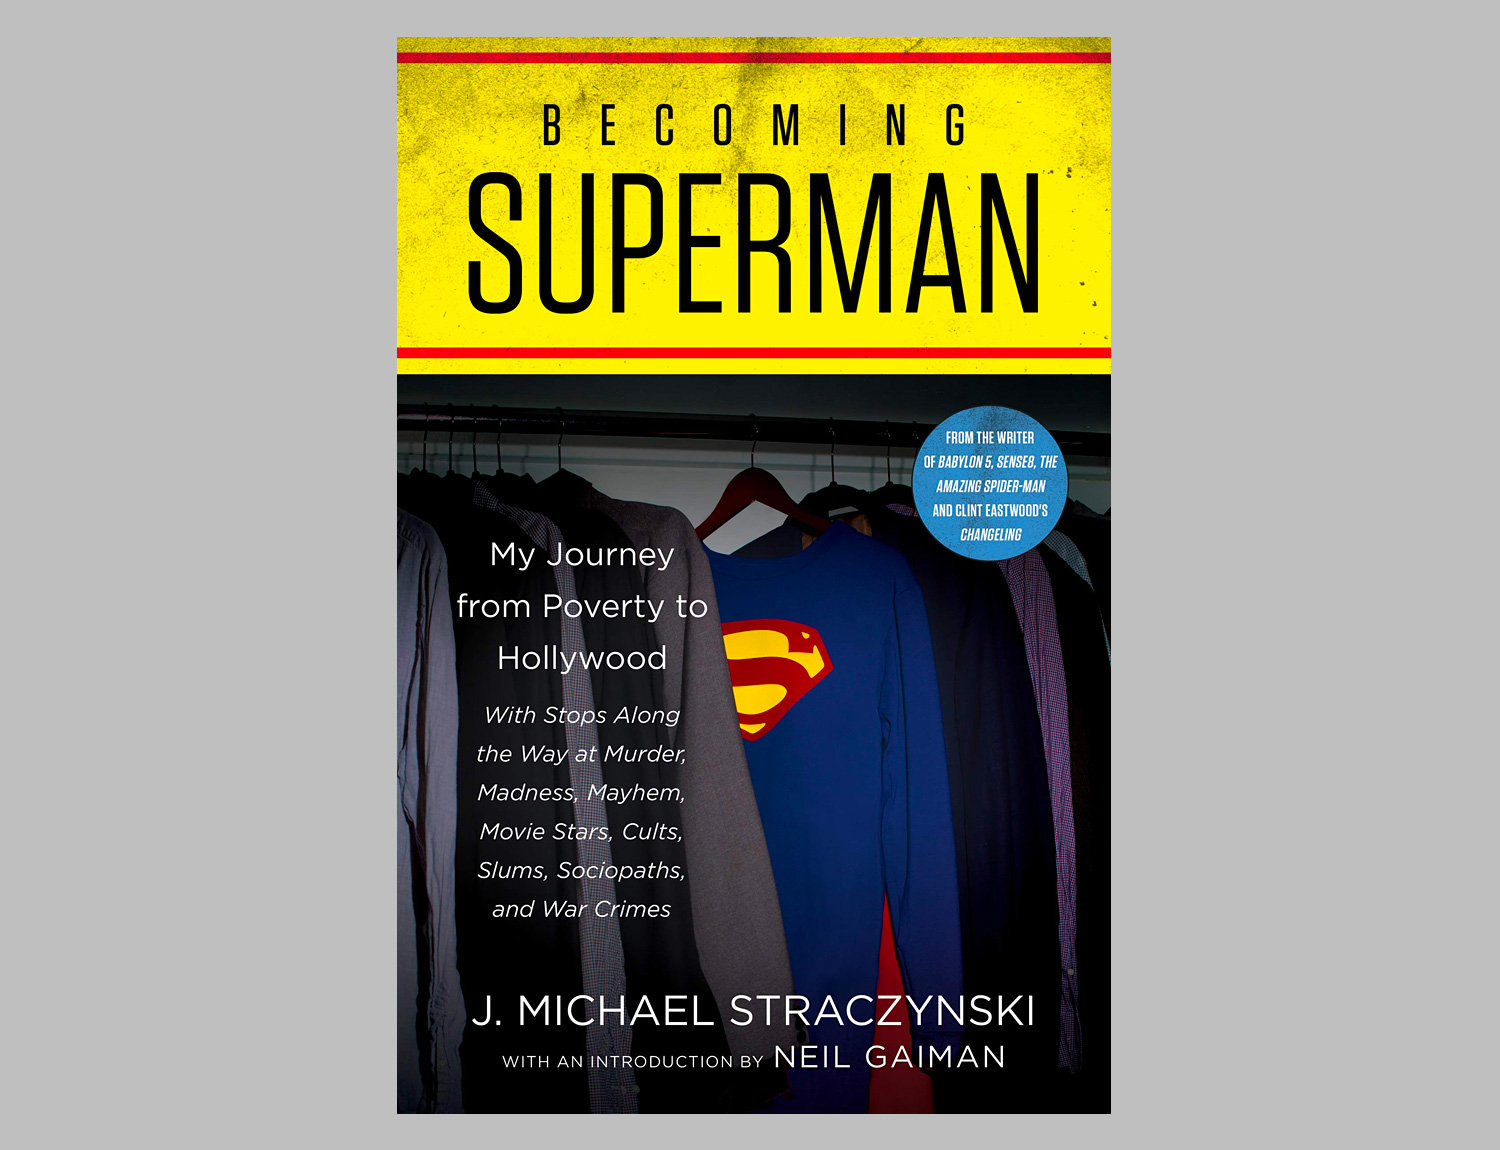 Becoming Superman: My Journey From Poverty to Hollywood at werd.com